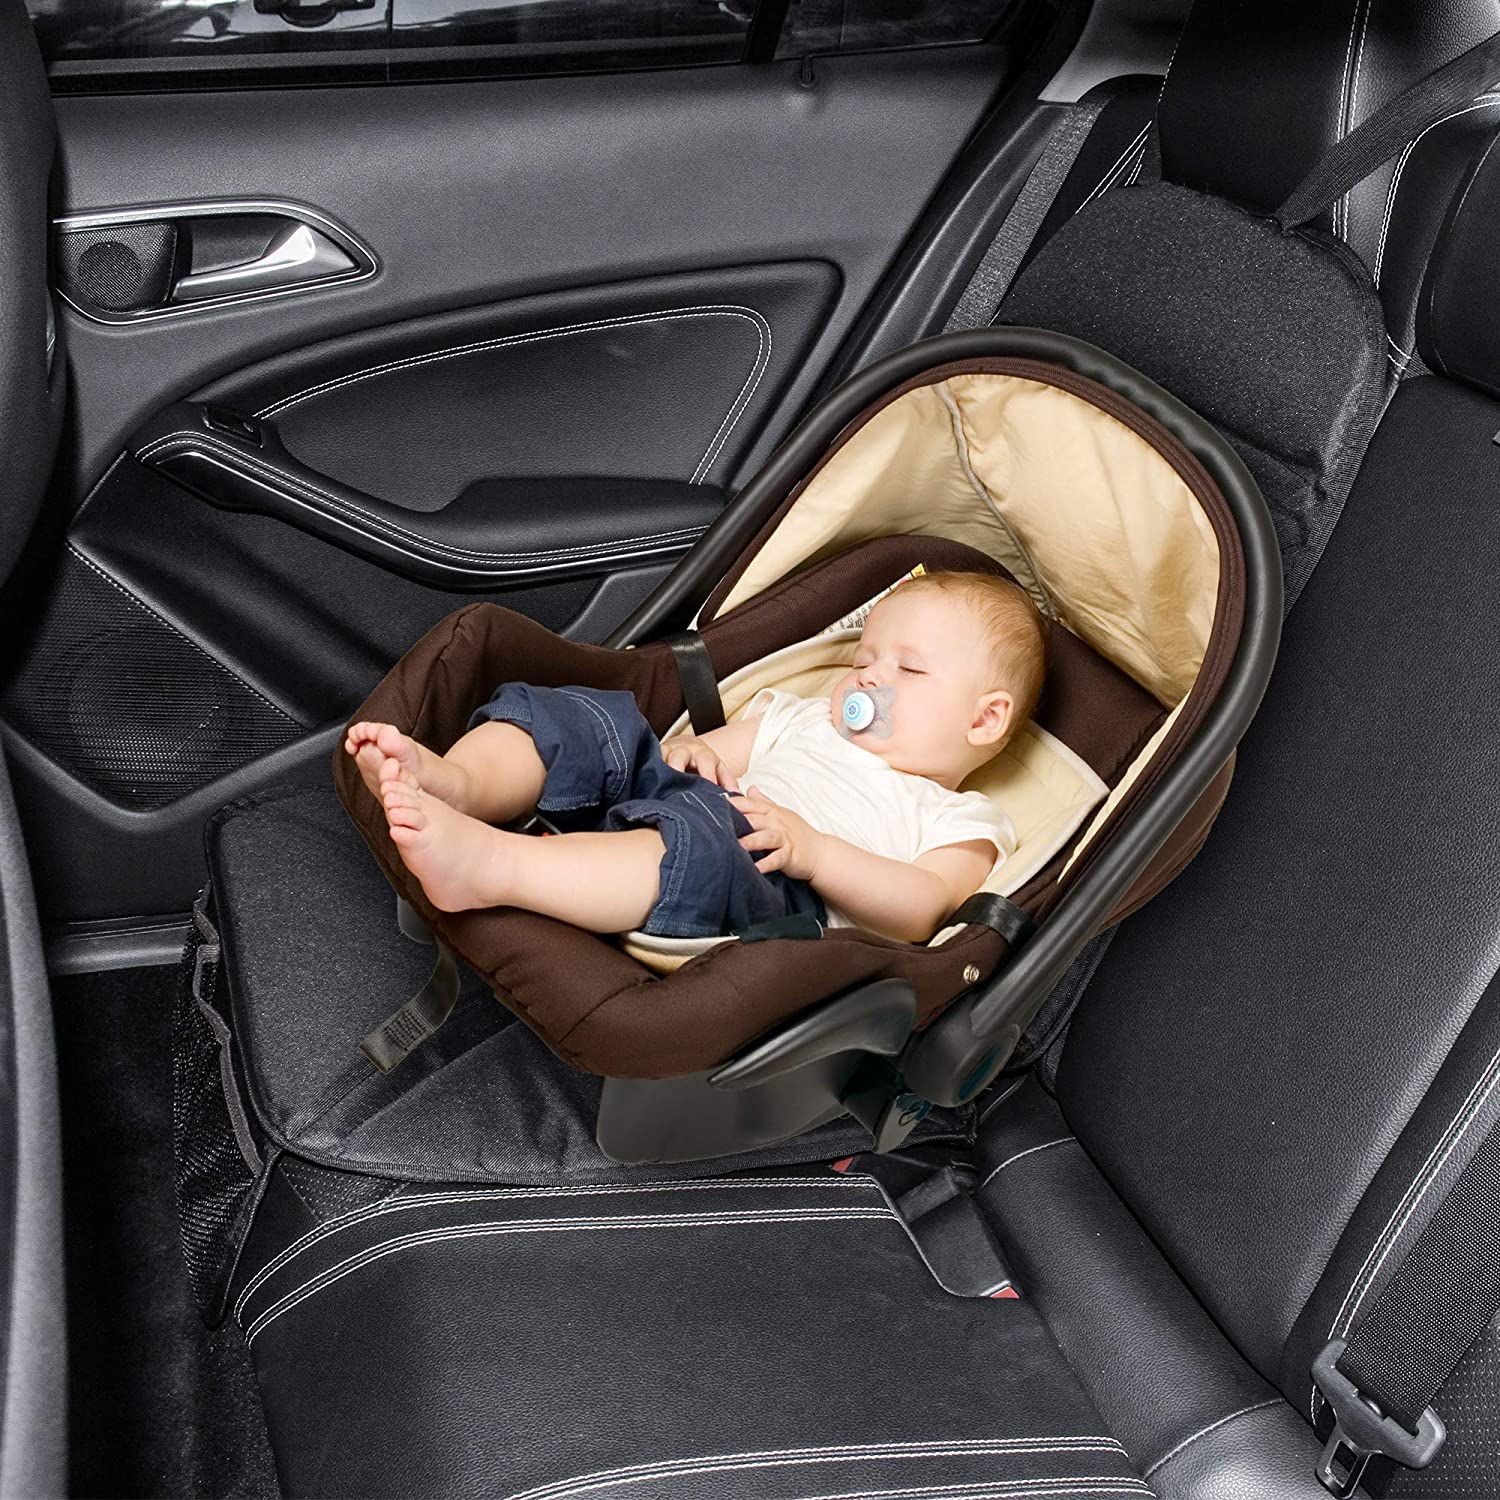 Alfheim Car Seat Protector,Non-Slip/&Durable Water Seat Cover with Storage Pockets for Baby,Children or Pets,Baby and Toddler Car Seats/&Heavy Duty Stain Protection/&Universal Size/&Resistance,Black